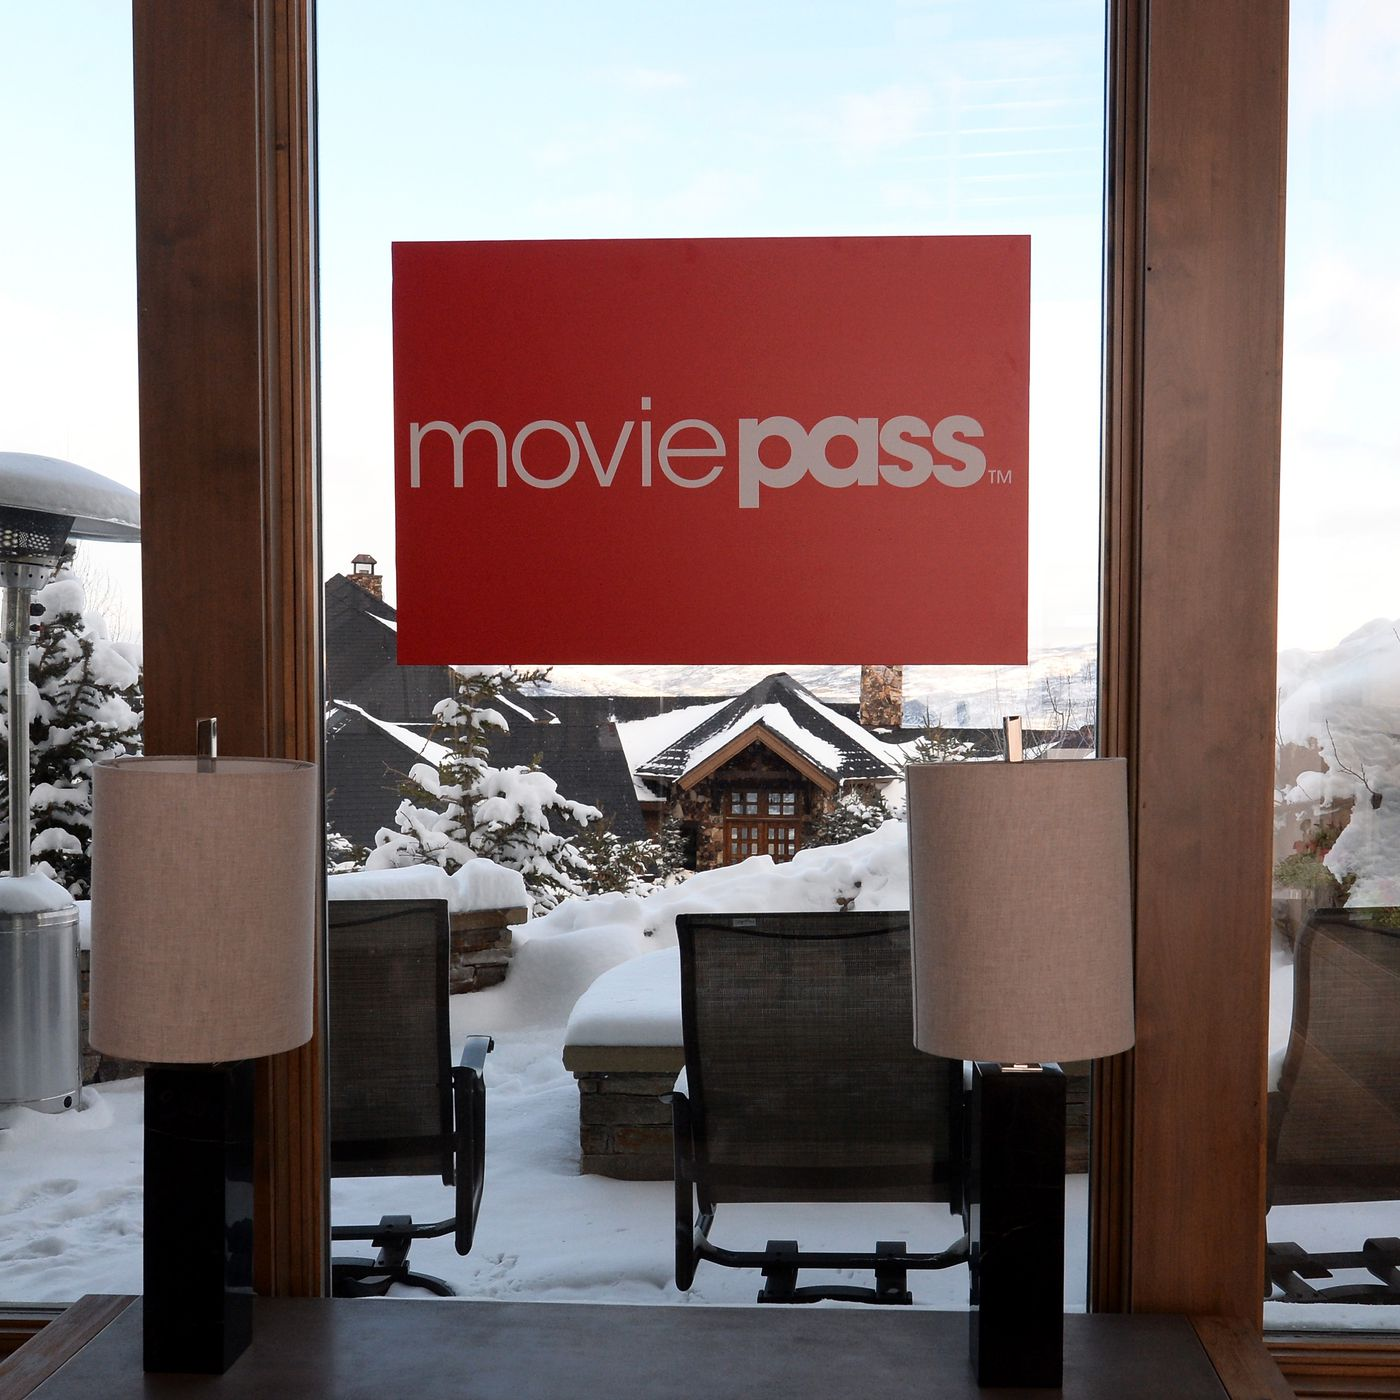 MoviePass will increase price and limit availability of new movies